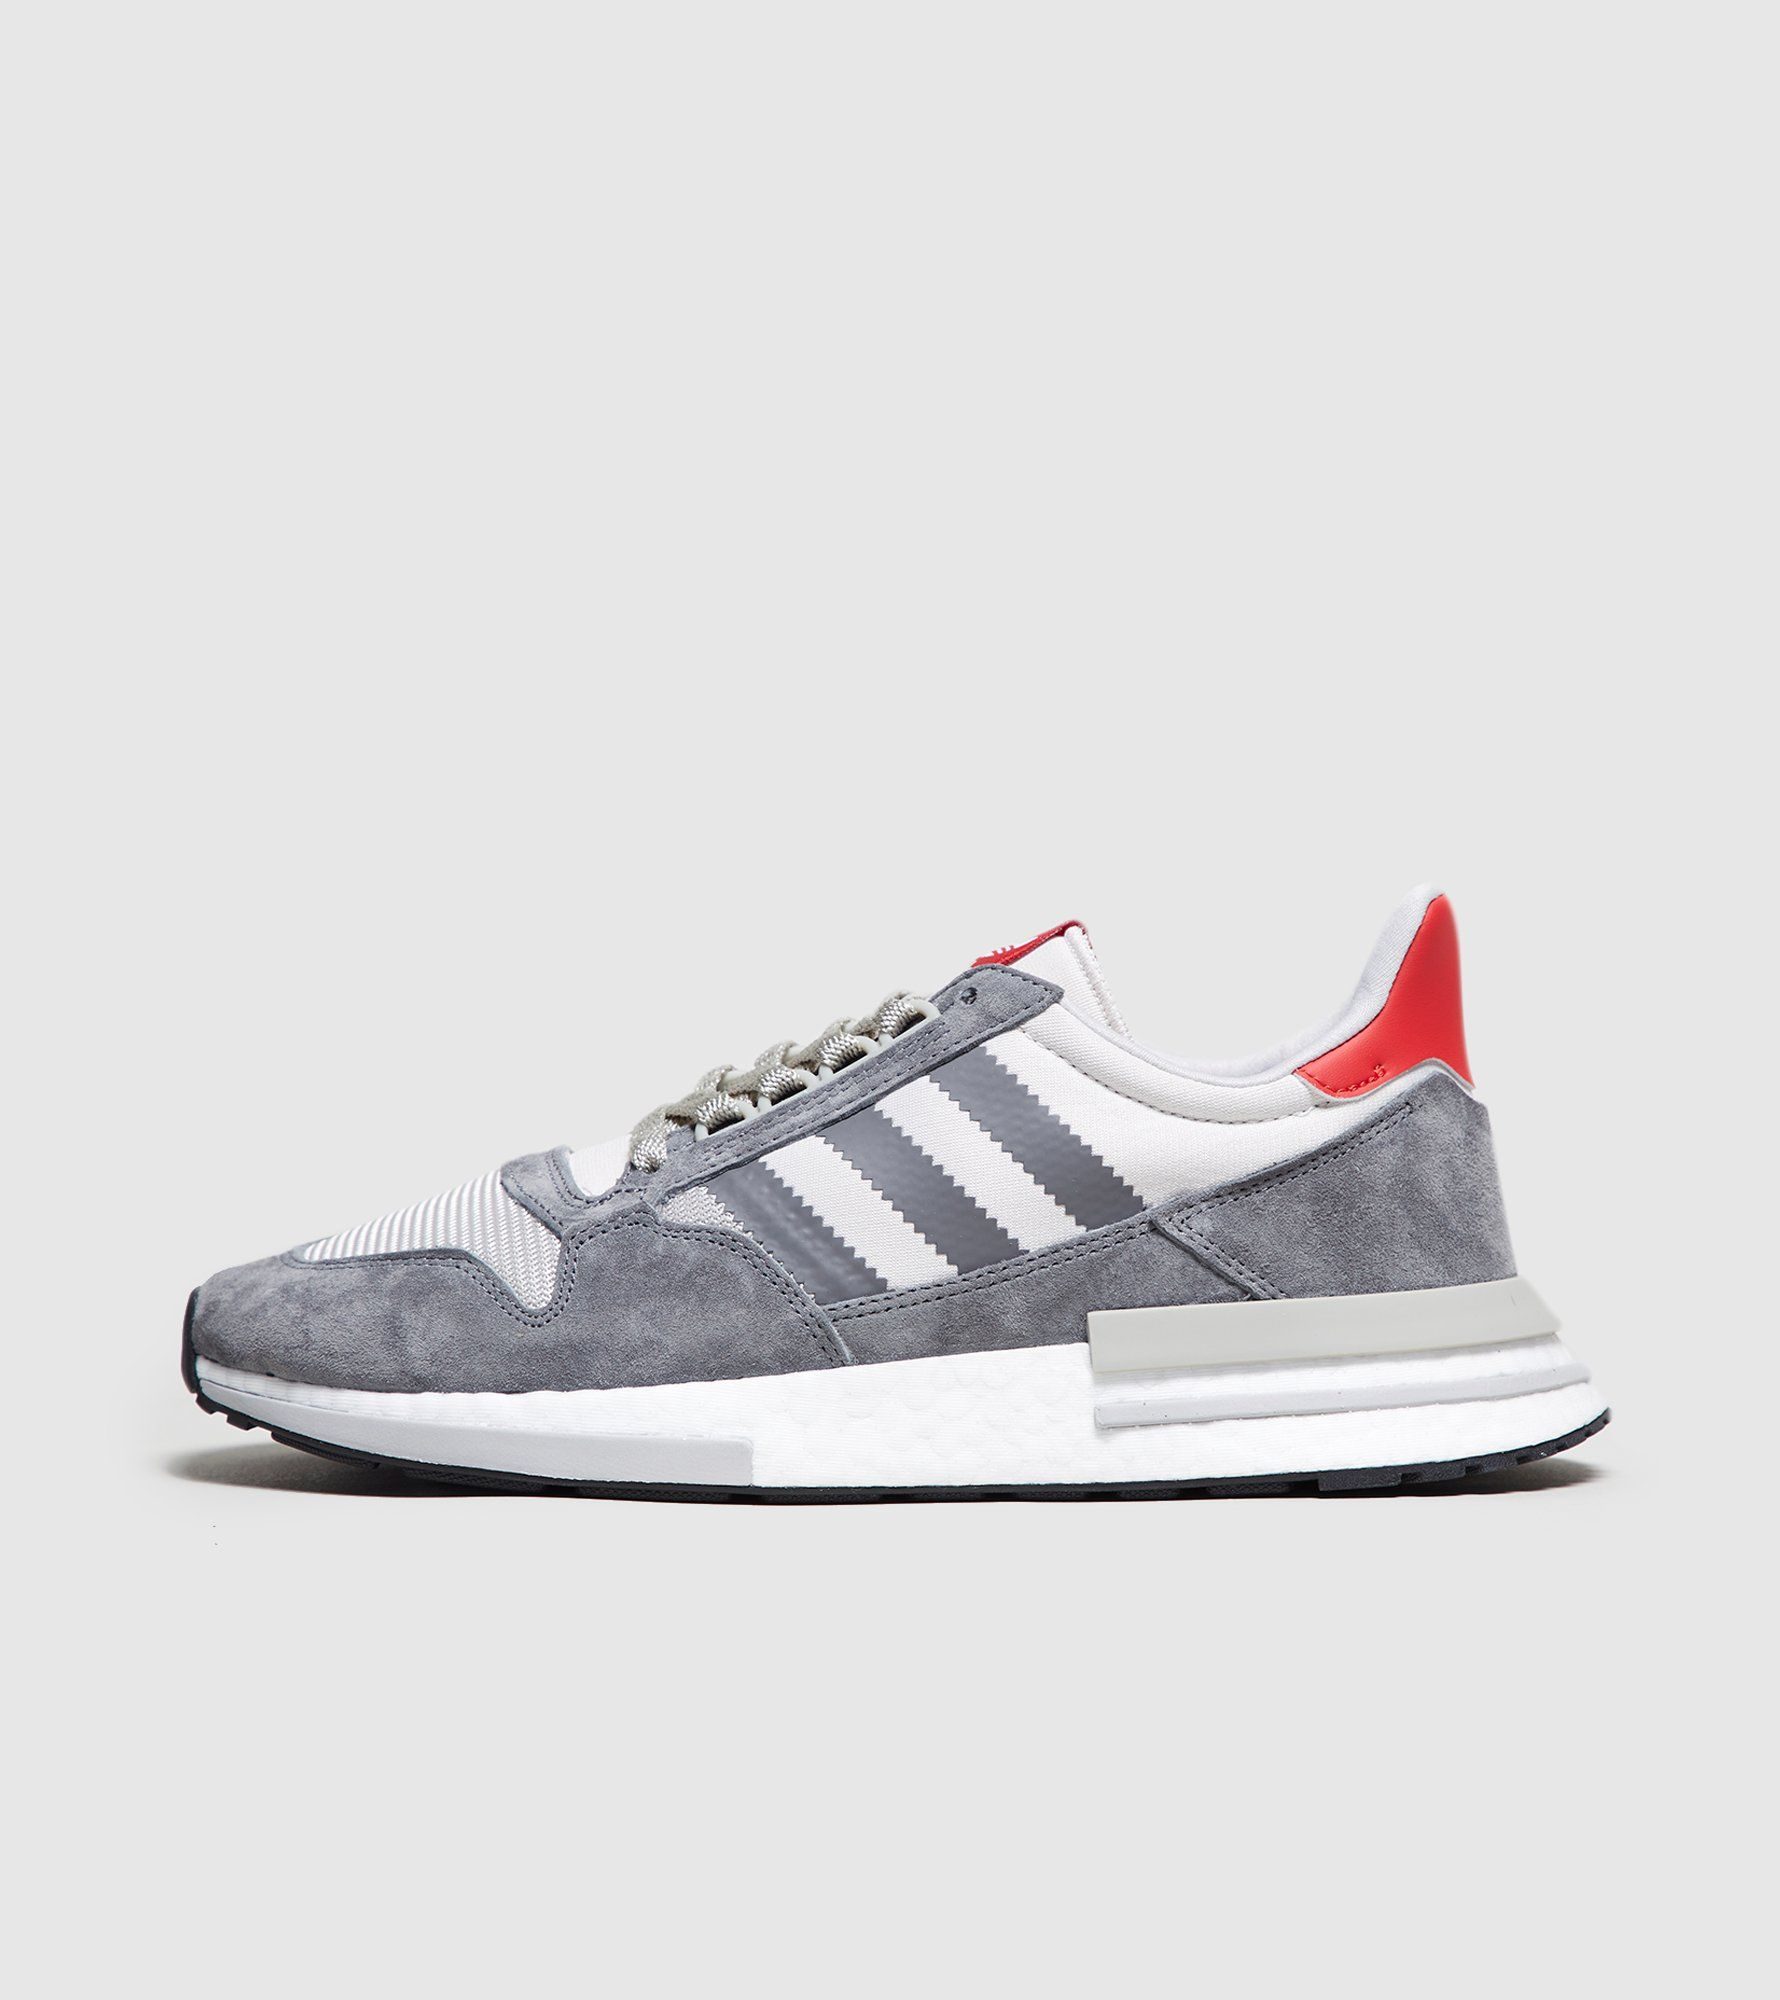 adidas Originals ZX500 OG Boost